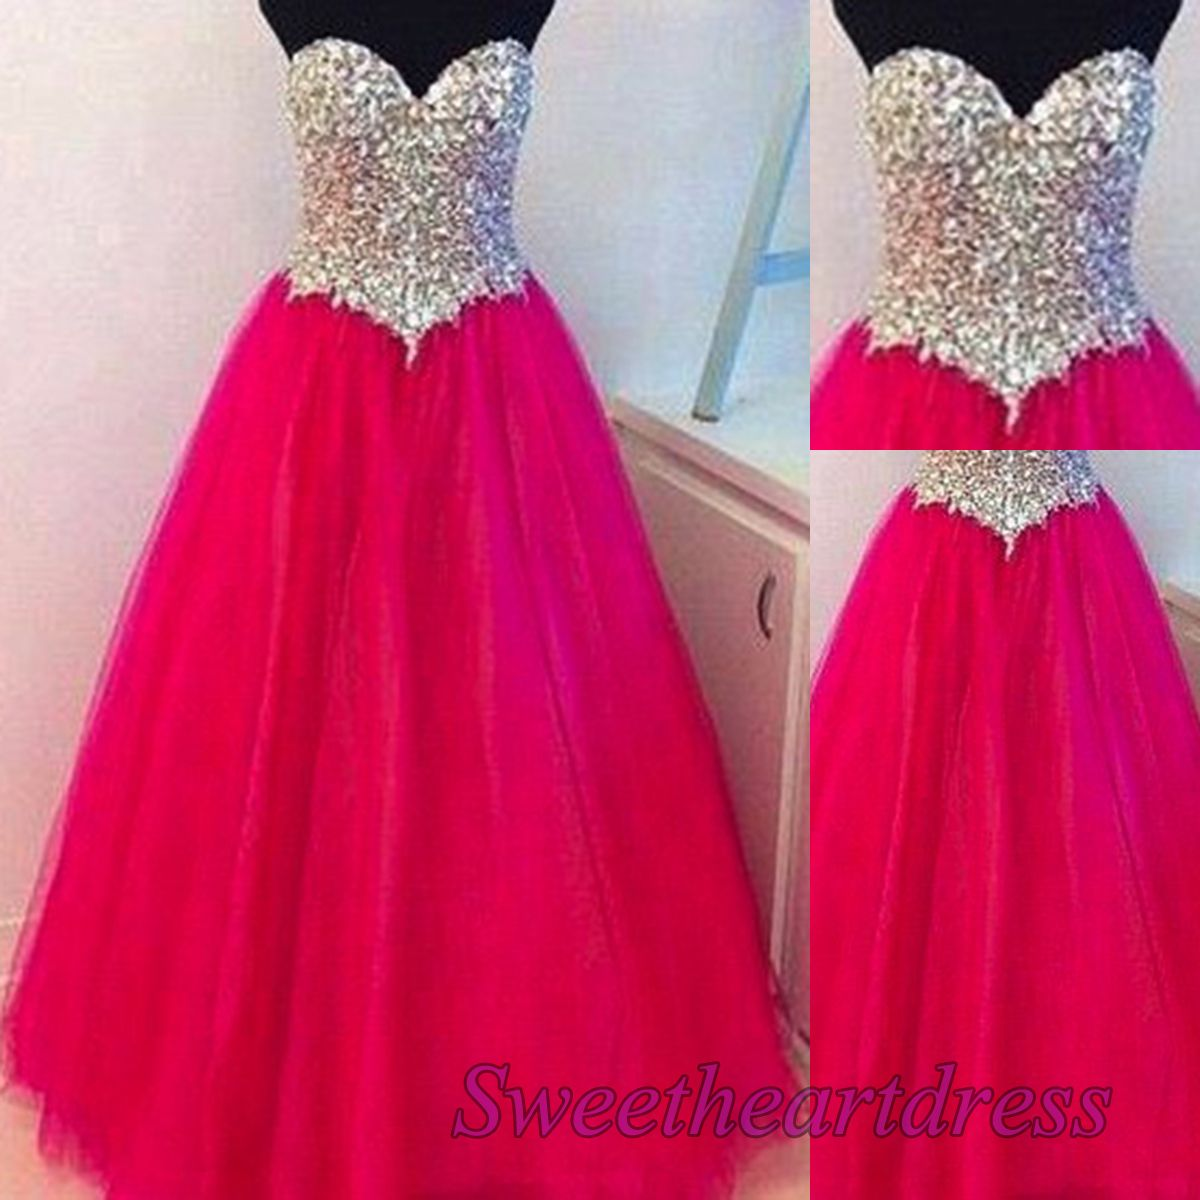 Beaded rose tulle a-line prom dress, sweetheart dress for teens ...